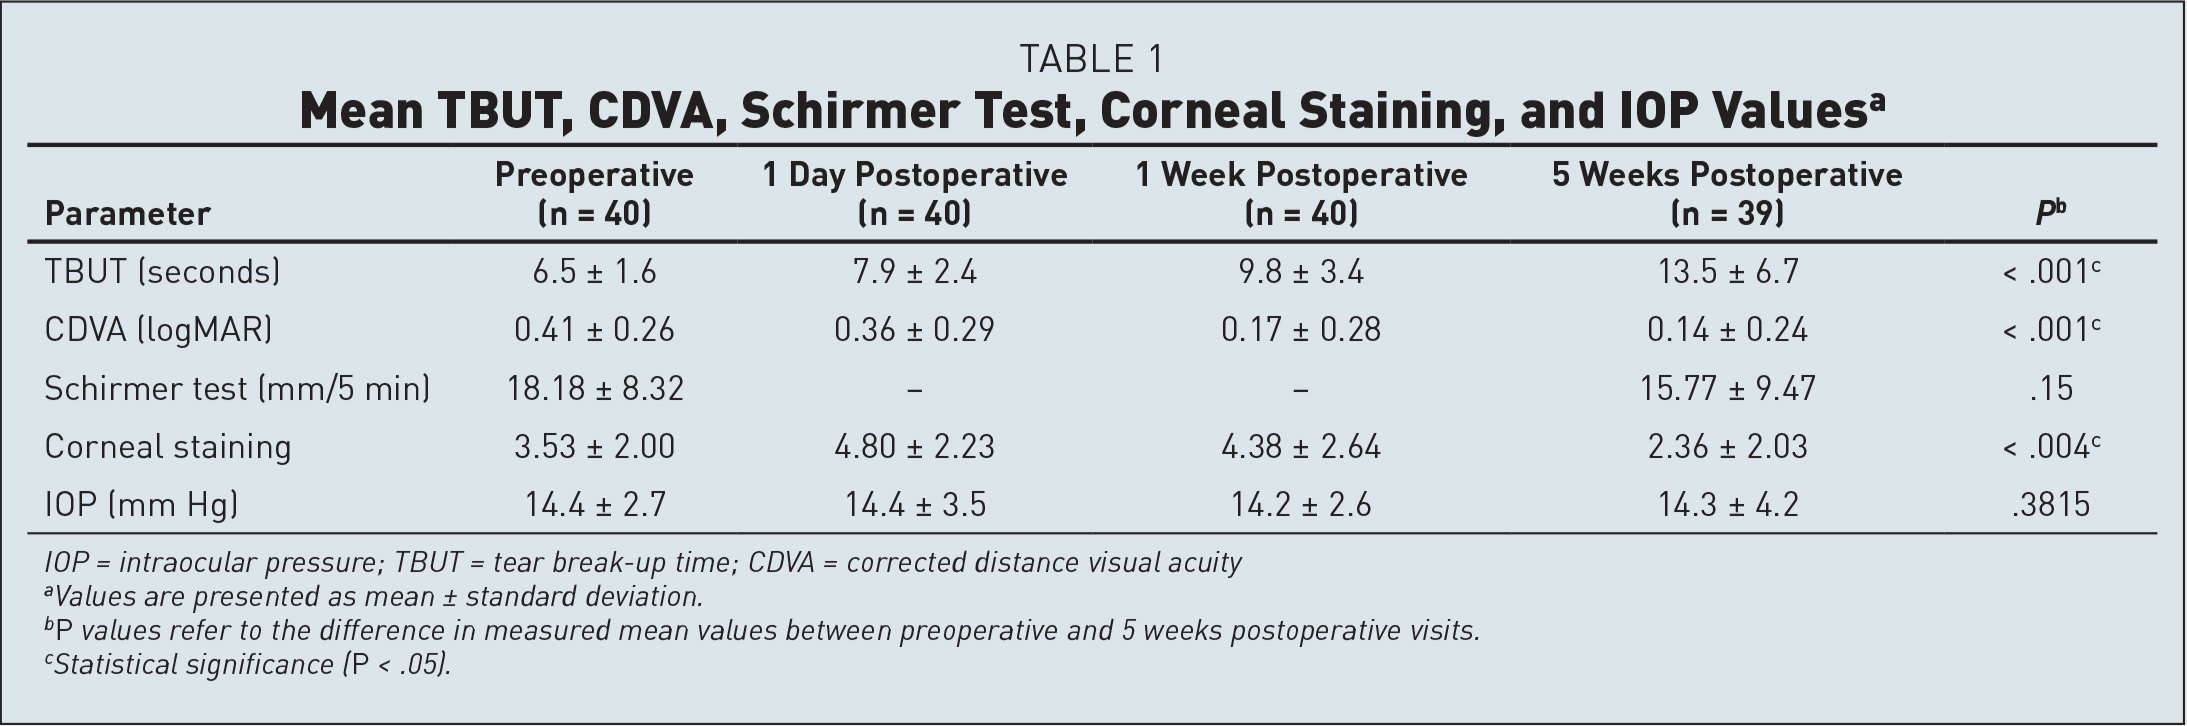 Mean TBUT, CDVA, Schirmer Test, Corneal Staining, and IOP Valuesa